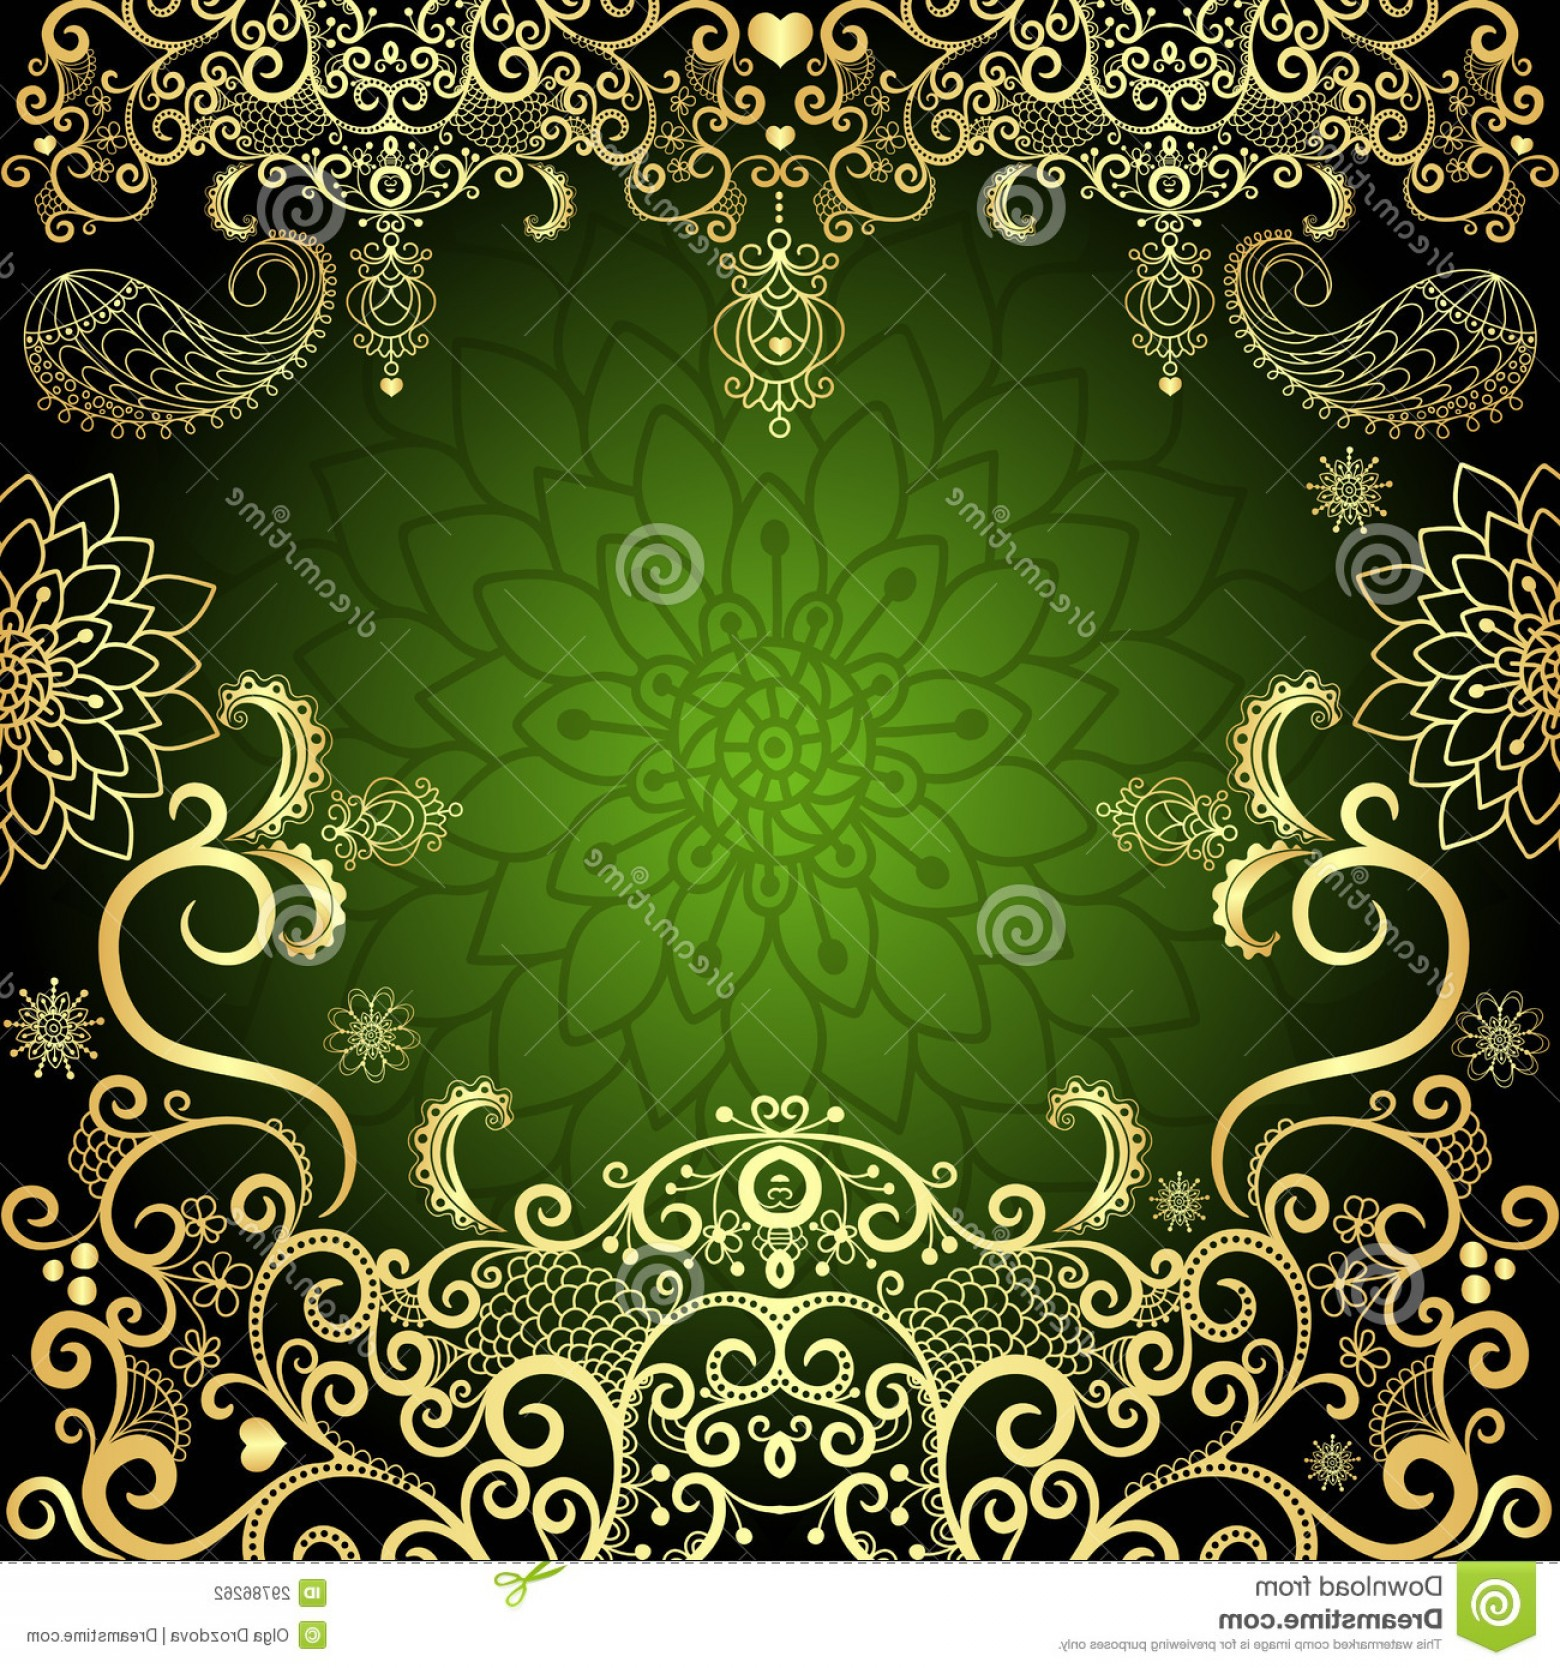 Filigree Oval Frame Vector: Stock Photography Green Gold Luxurious Filigree Vintage Floral Easter Frame Vector Image